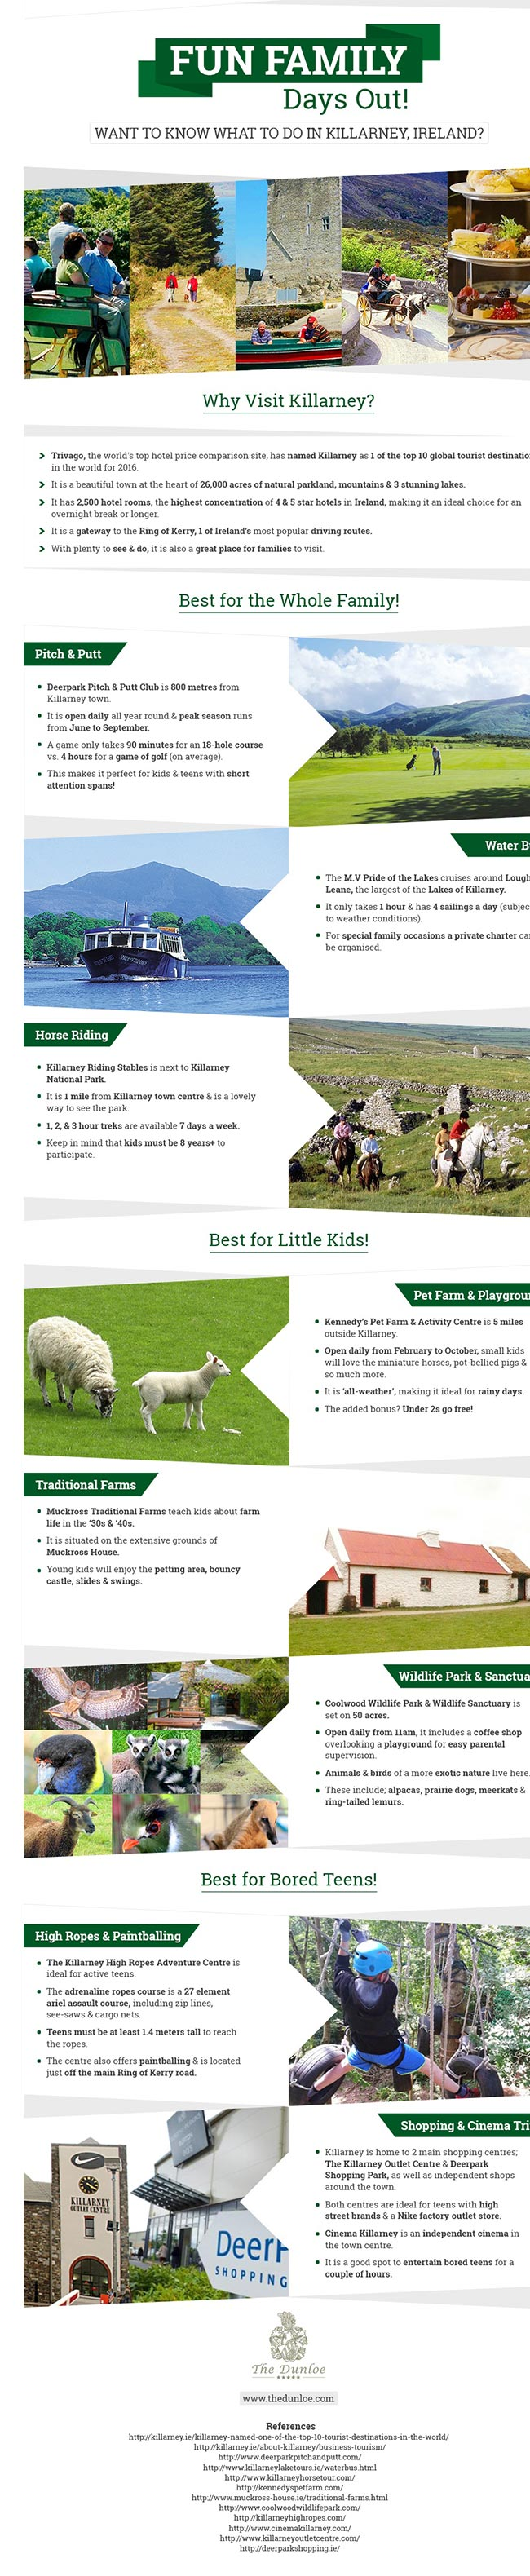 a-guide-to-fun-family-days-out-in-killarney-ireland-infographic